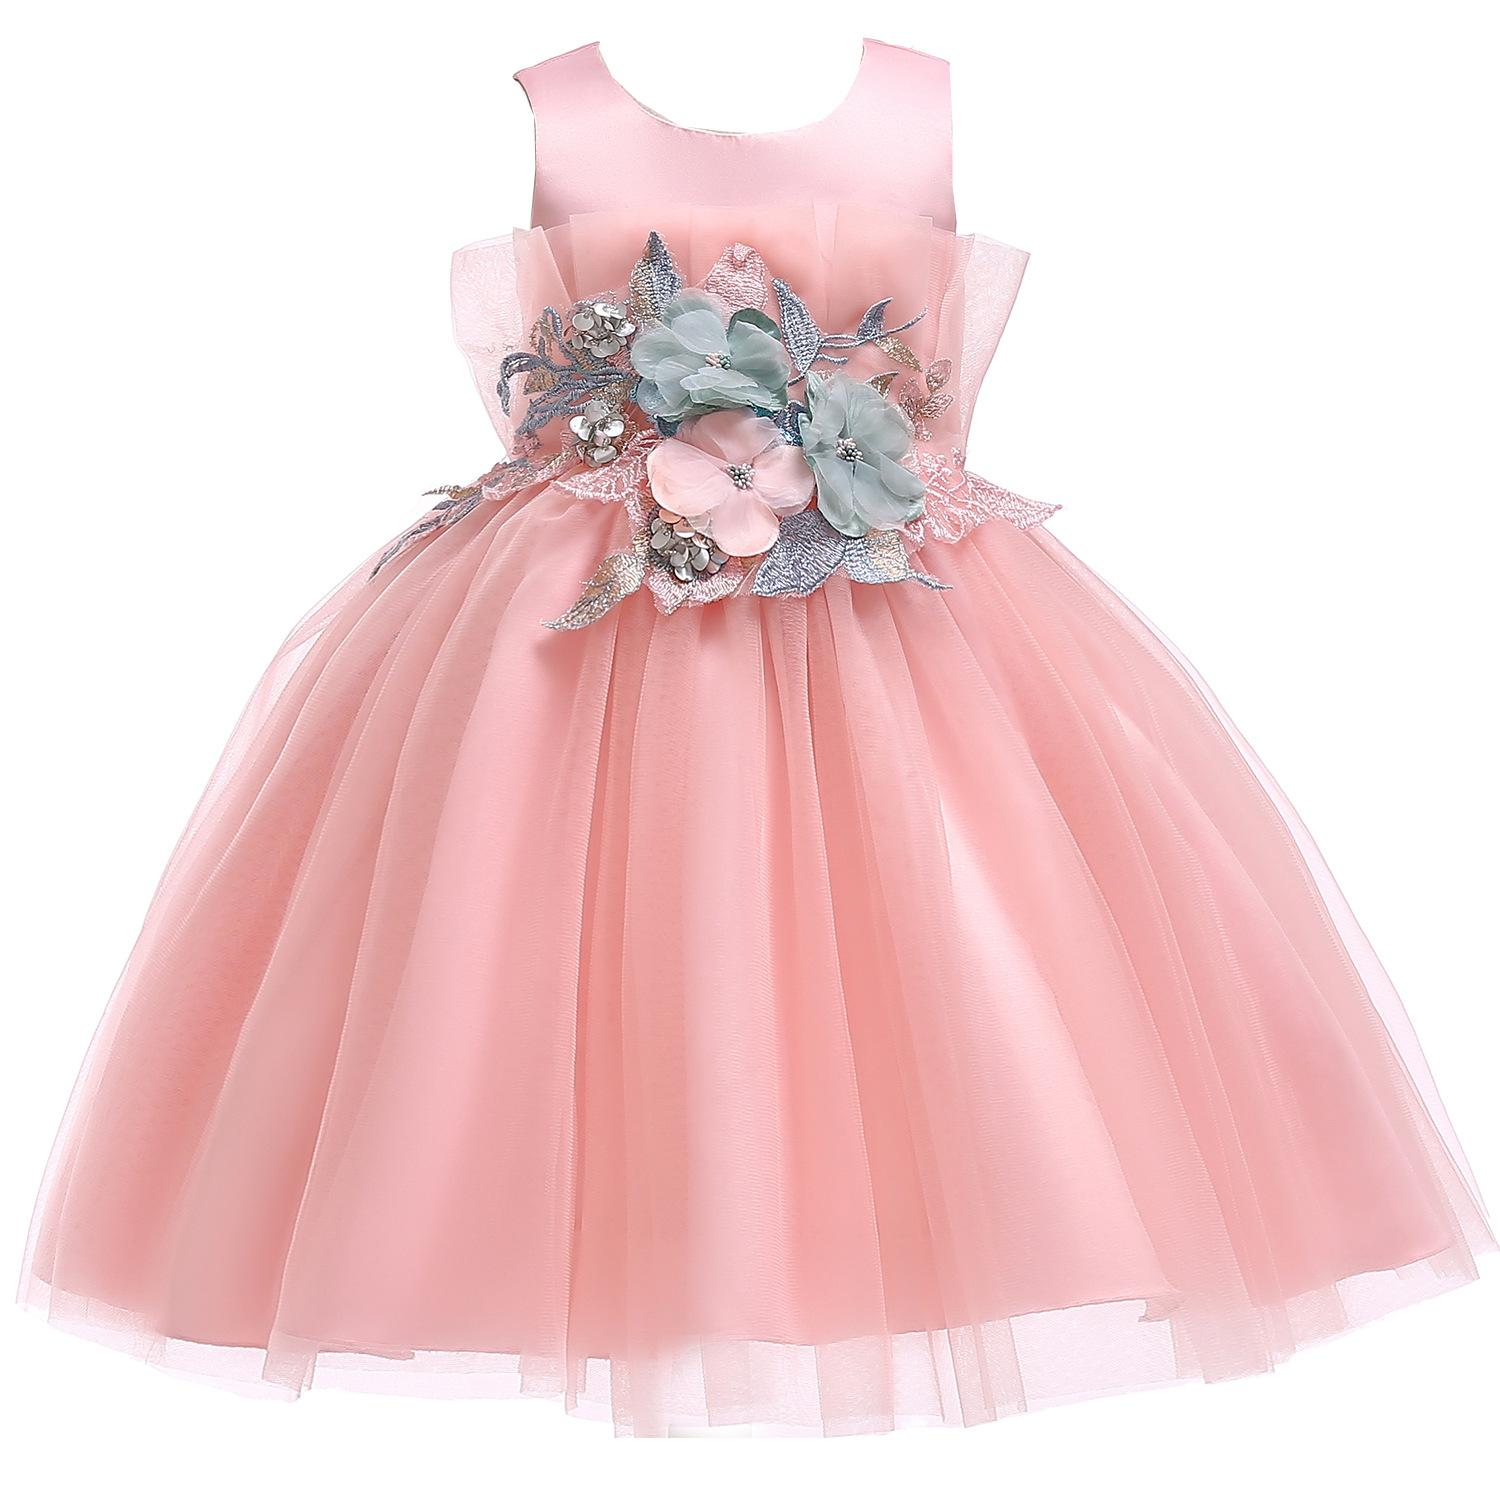 954e0011bc8e3 Junior Flower Dress For Party Girl Children School Birthday Clothing Tutu  Applique Kids Summer 2019 Clothes Infant Vestidos Wear